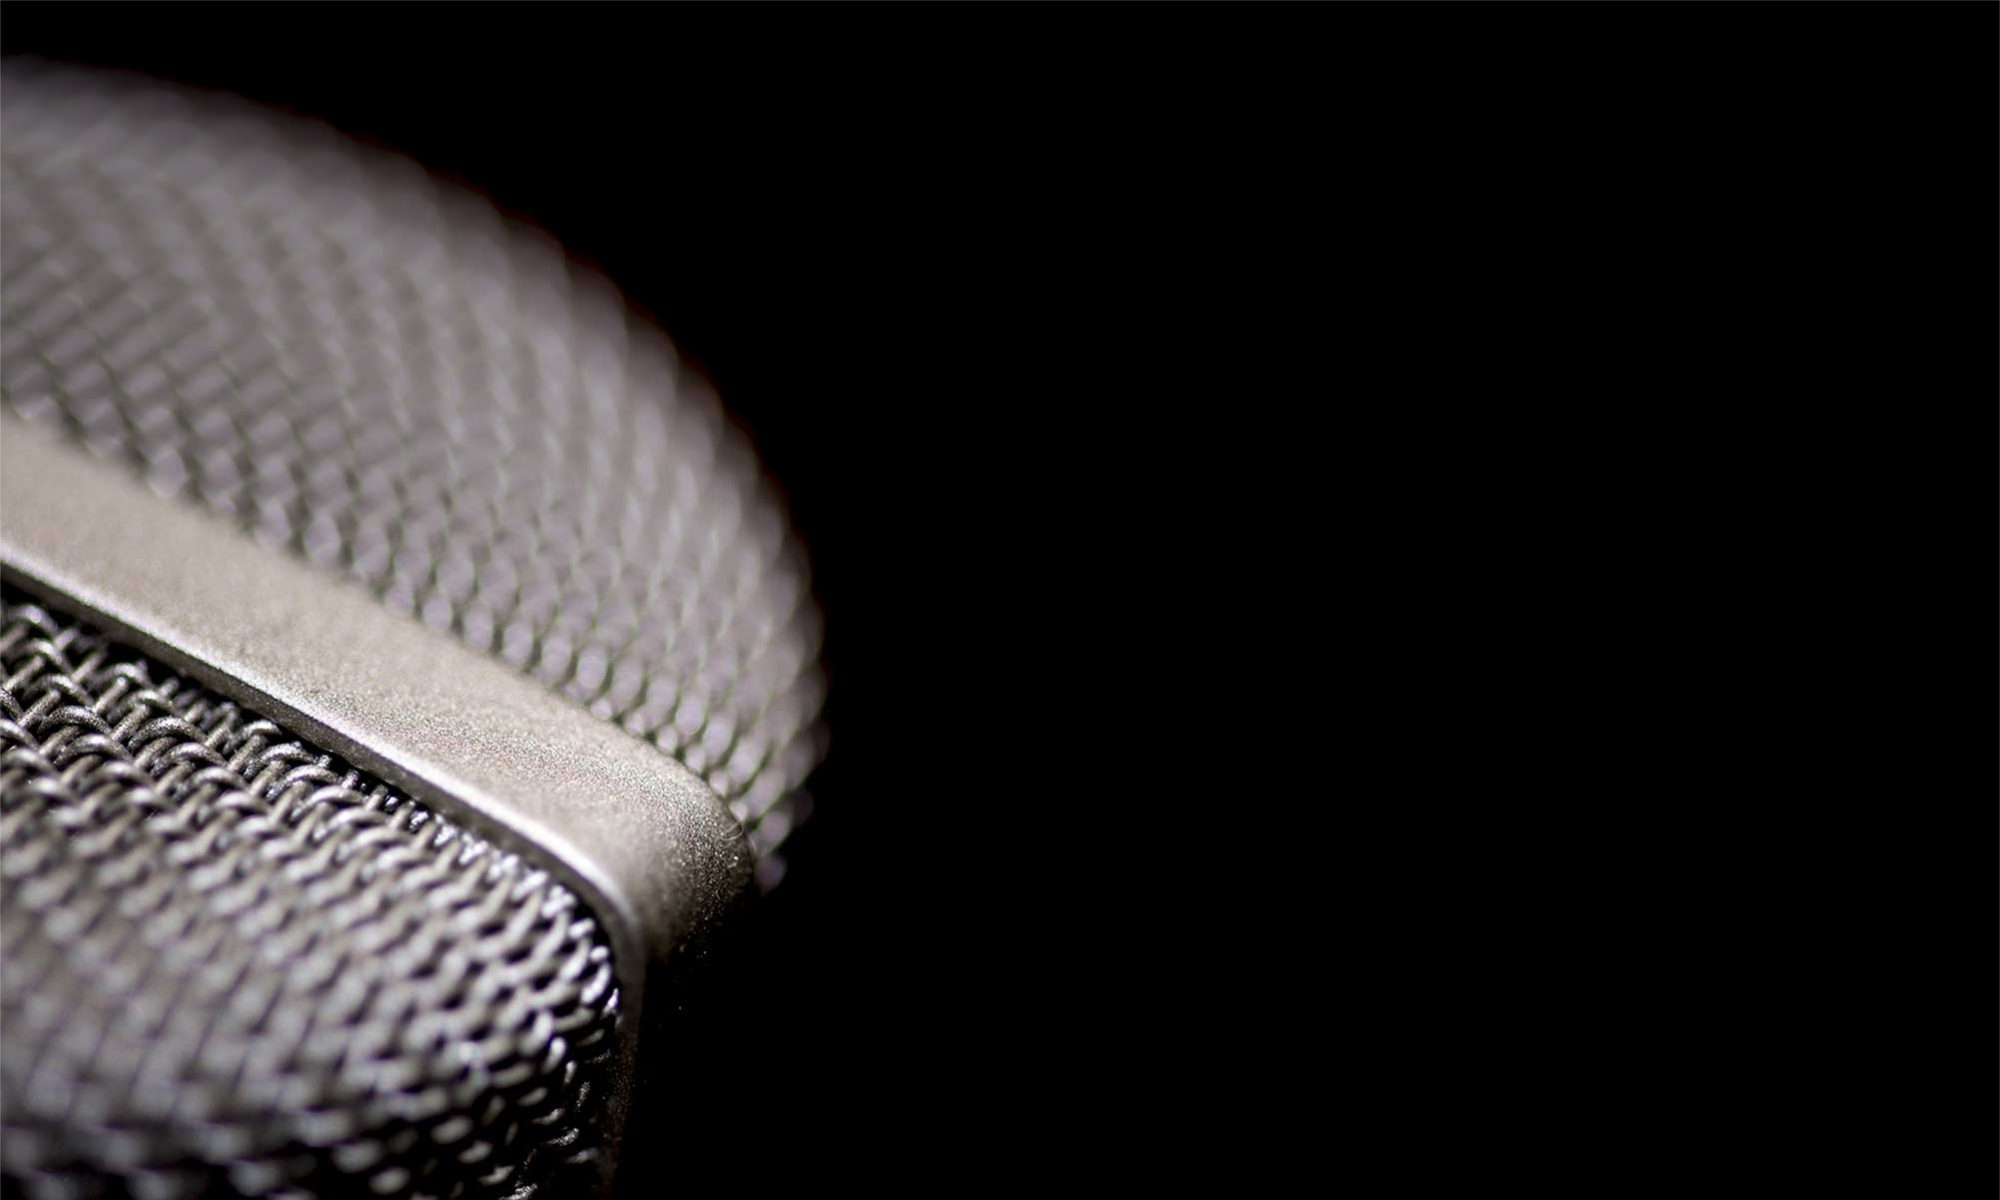 microphone against black background